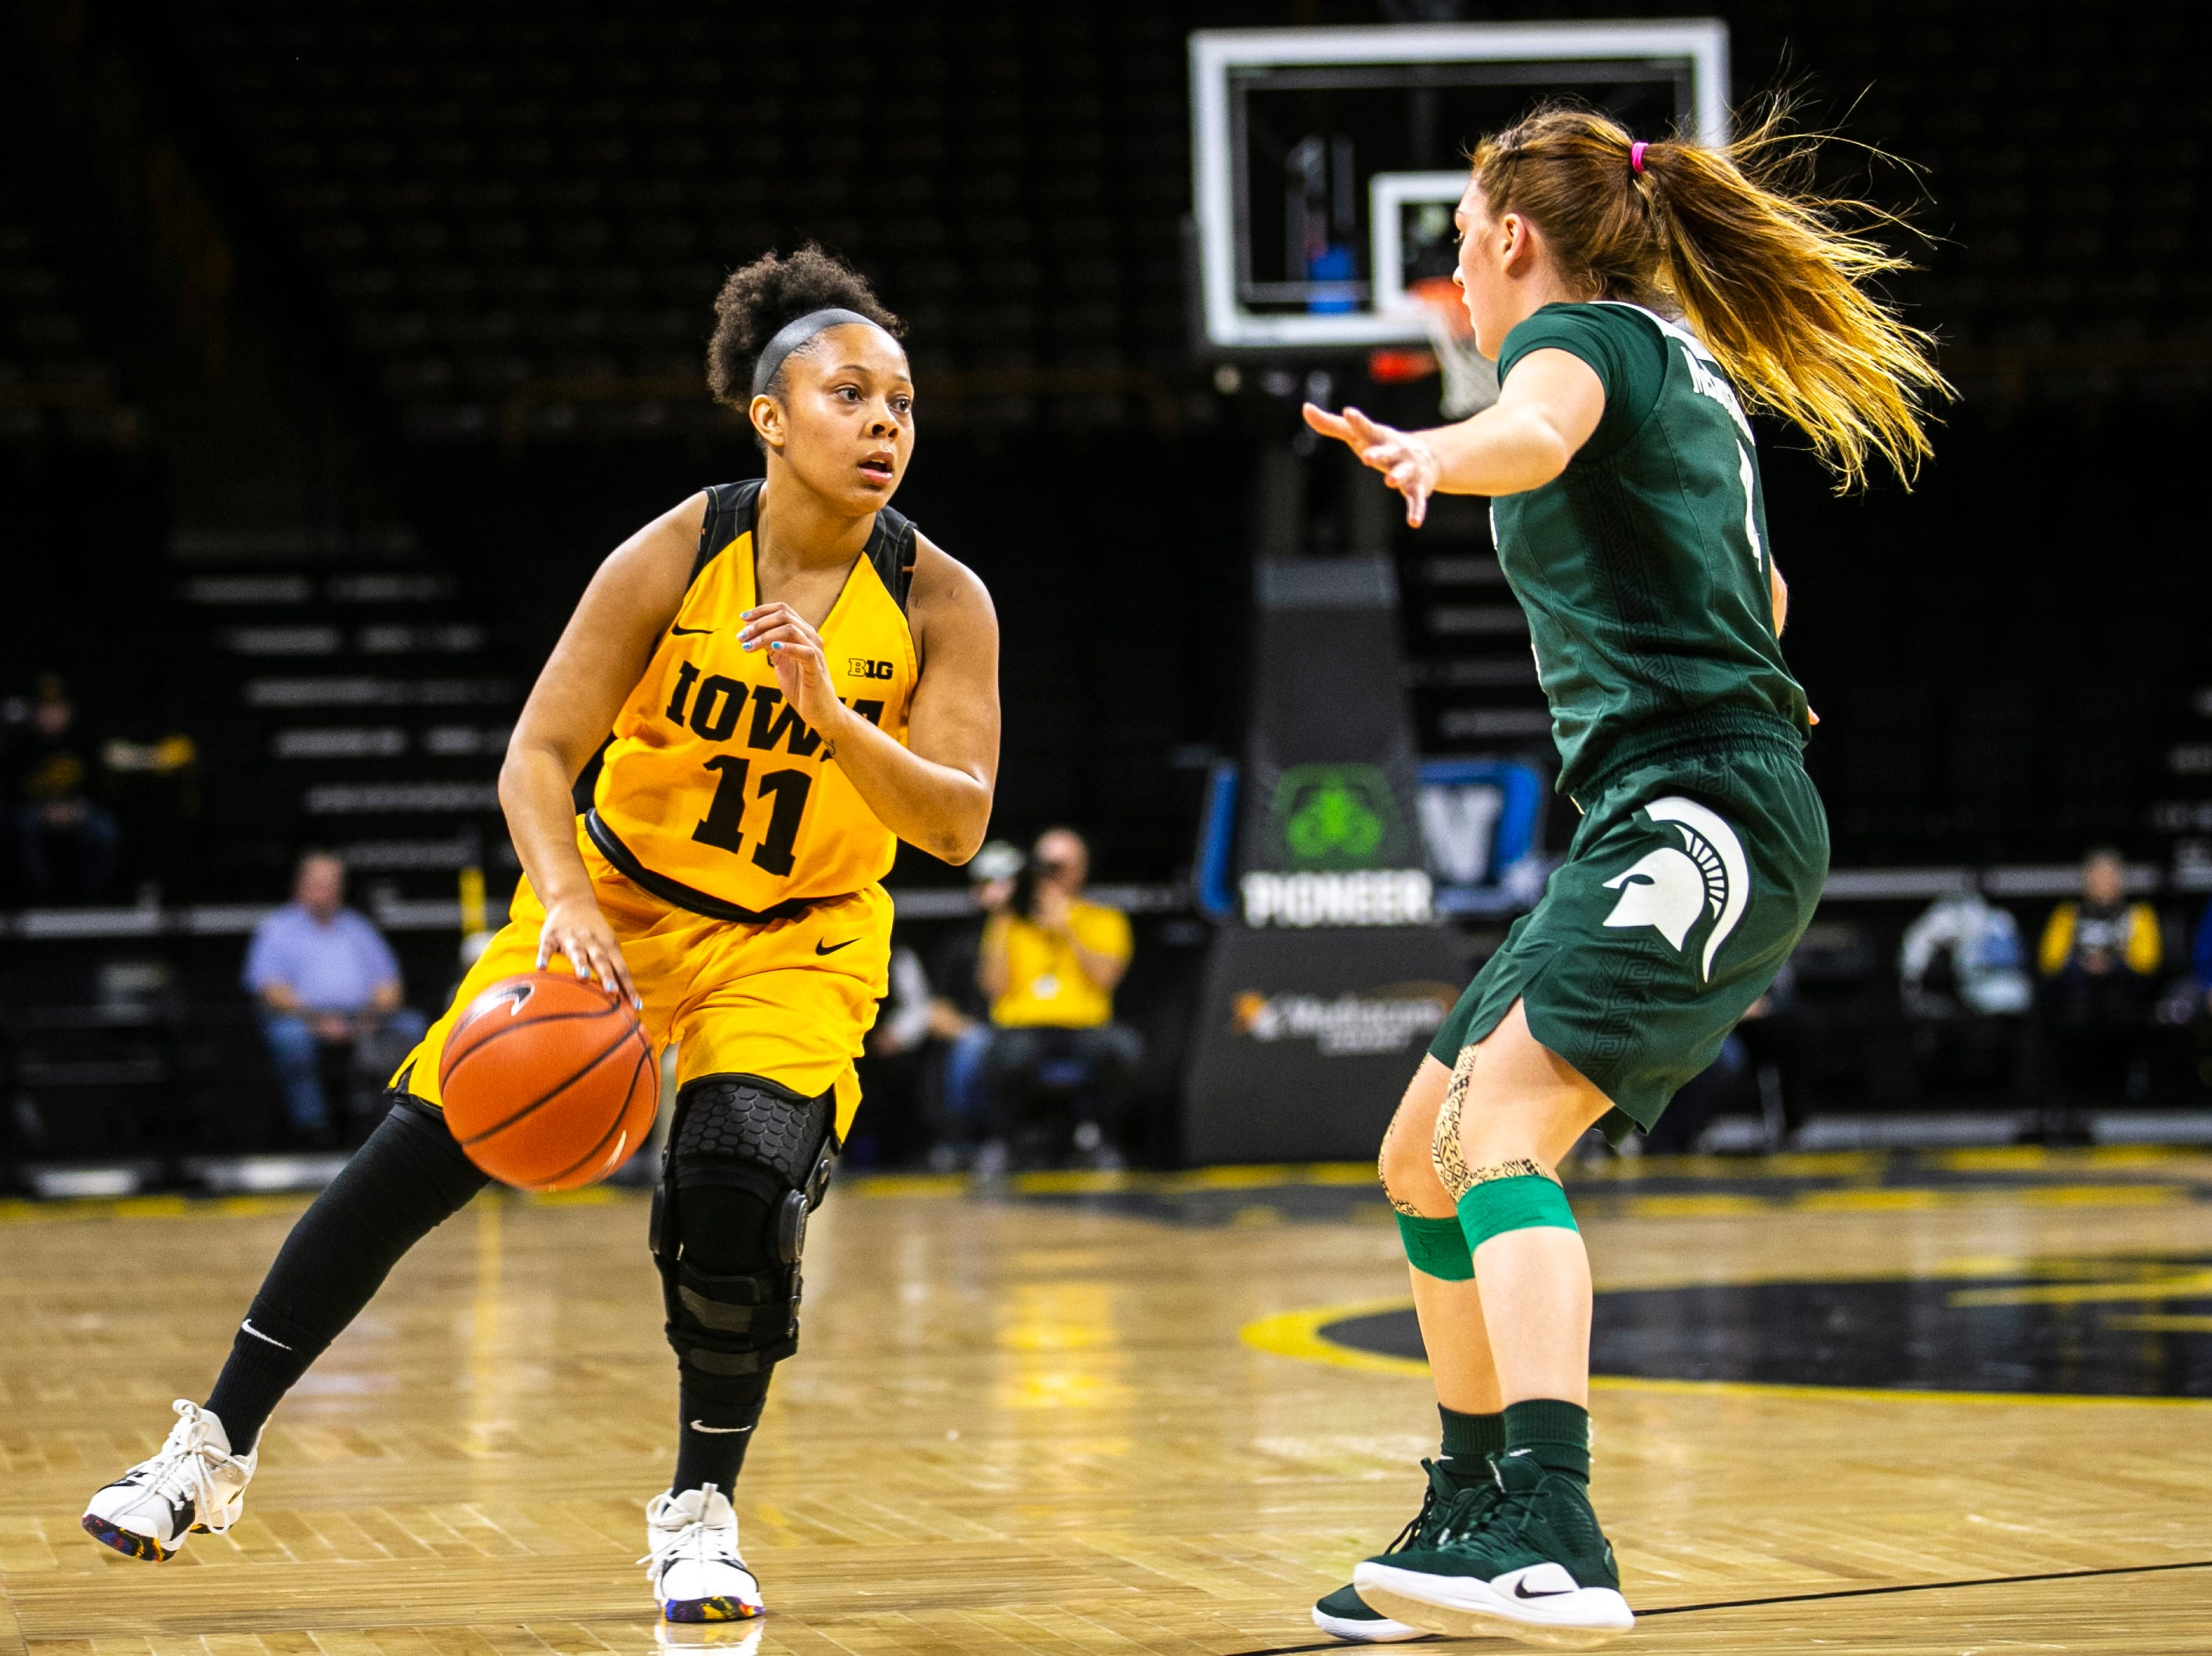 Iowa guard Tania Davis (11) takes the ball up court while Michigan State guard Taryn McCutcheon (4) defends during a NCAA Big Ten Conference women's basketball game on Thursday, Feb. 7, 2019 at Carver-Hawkeye Arena in Iowa City, Iowa.